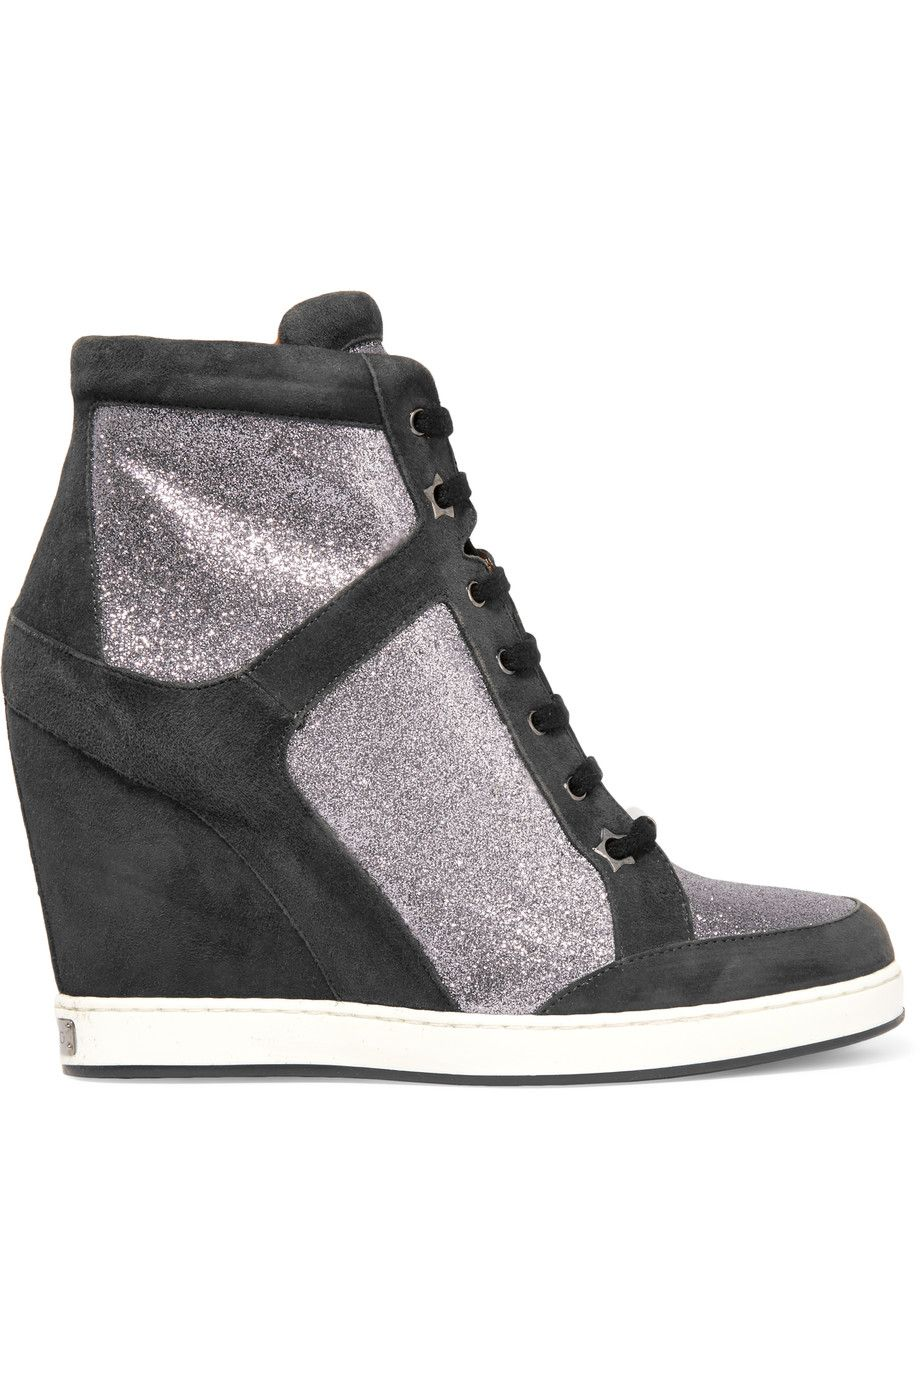 a9aebd7c2dd JIMMY CHOO Glittered leather and suede wedge sneakers.  jimmychoo  shoes   sneakers